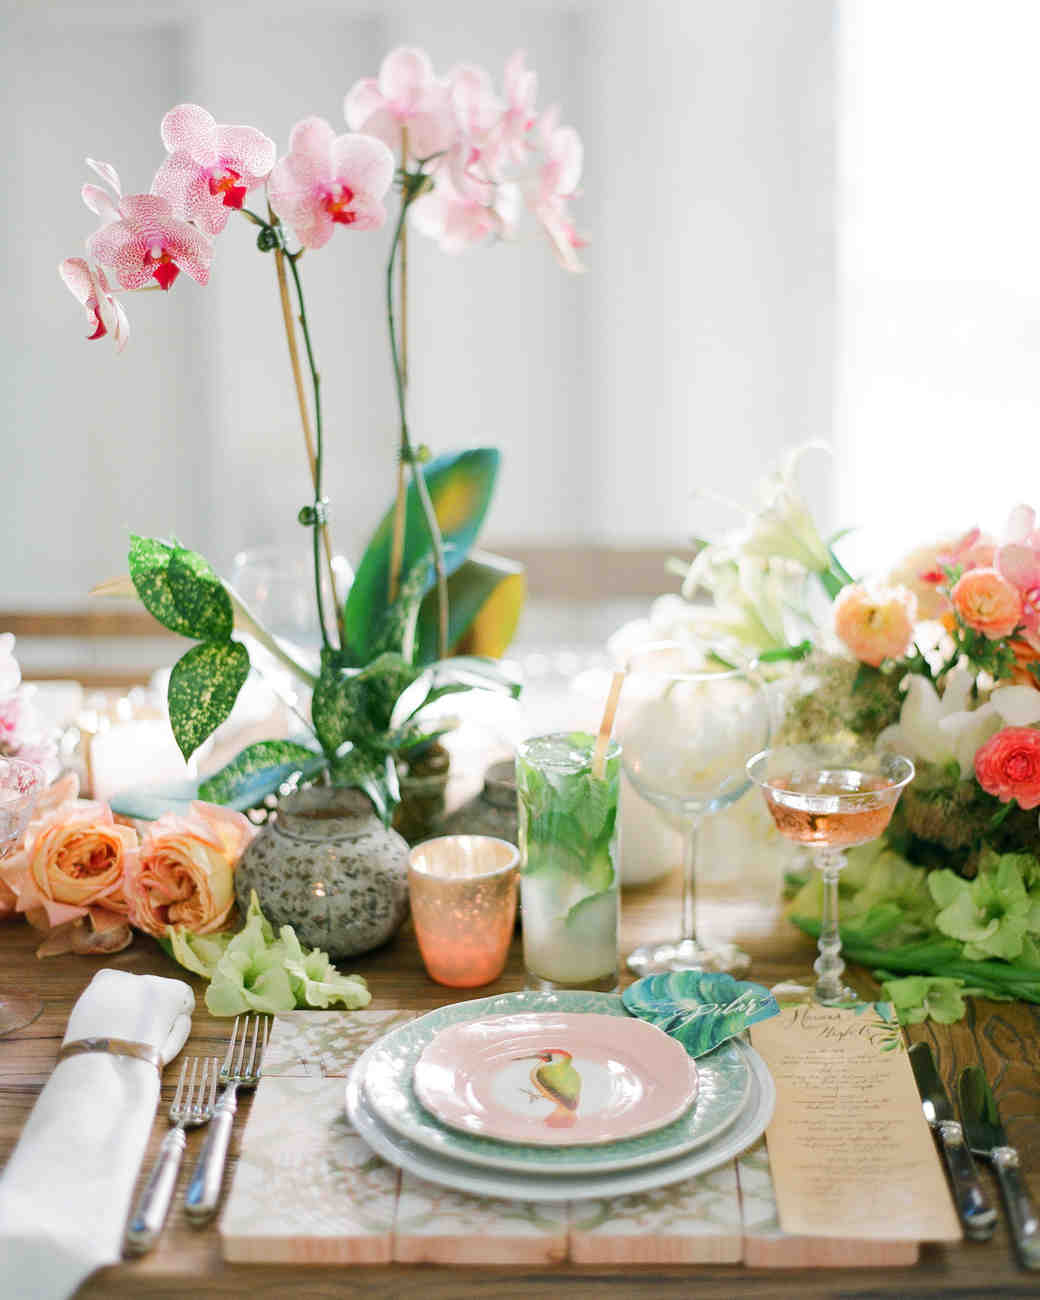 Tropical Place Setting with Orchids and Patterned Plates : tropical wedding table settings - pezcame.com